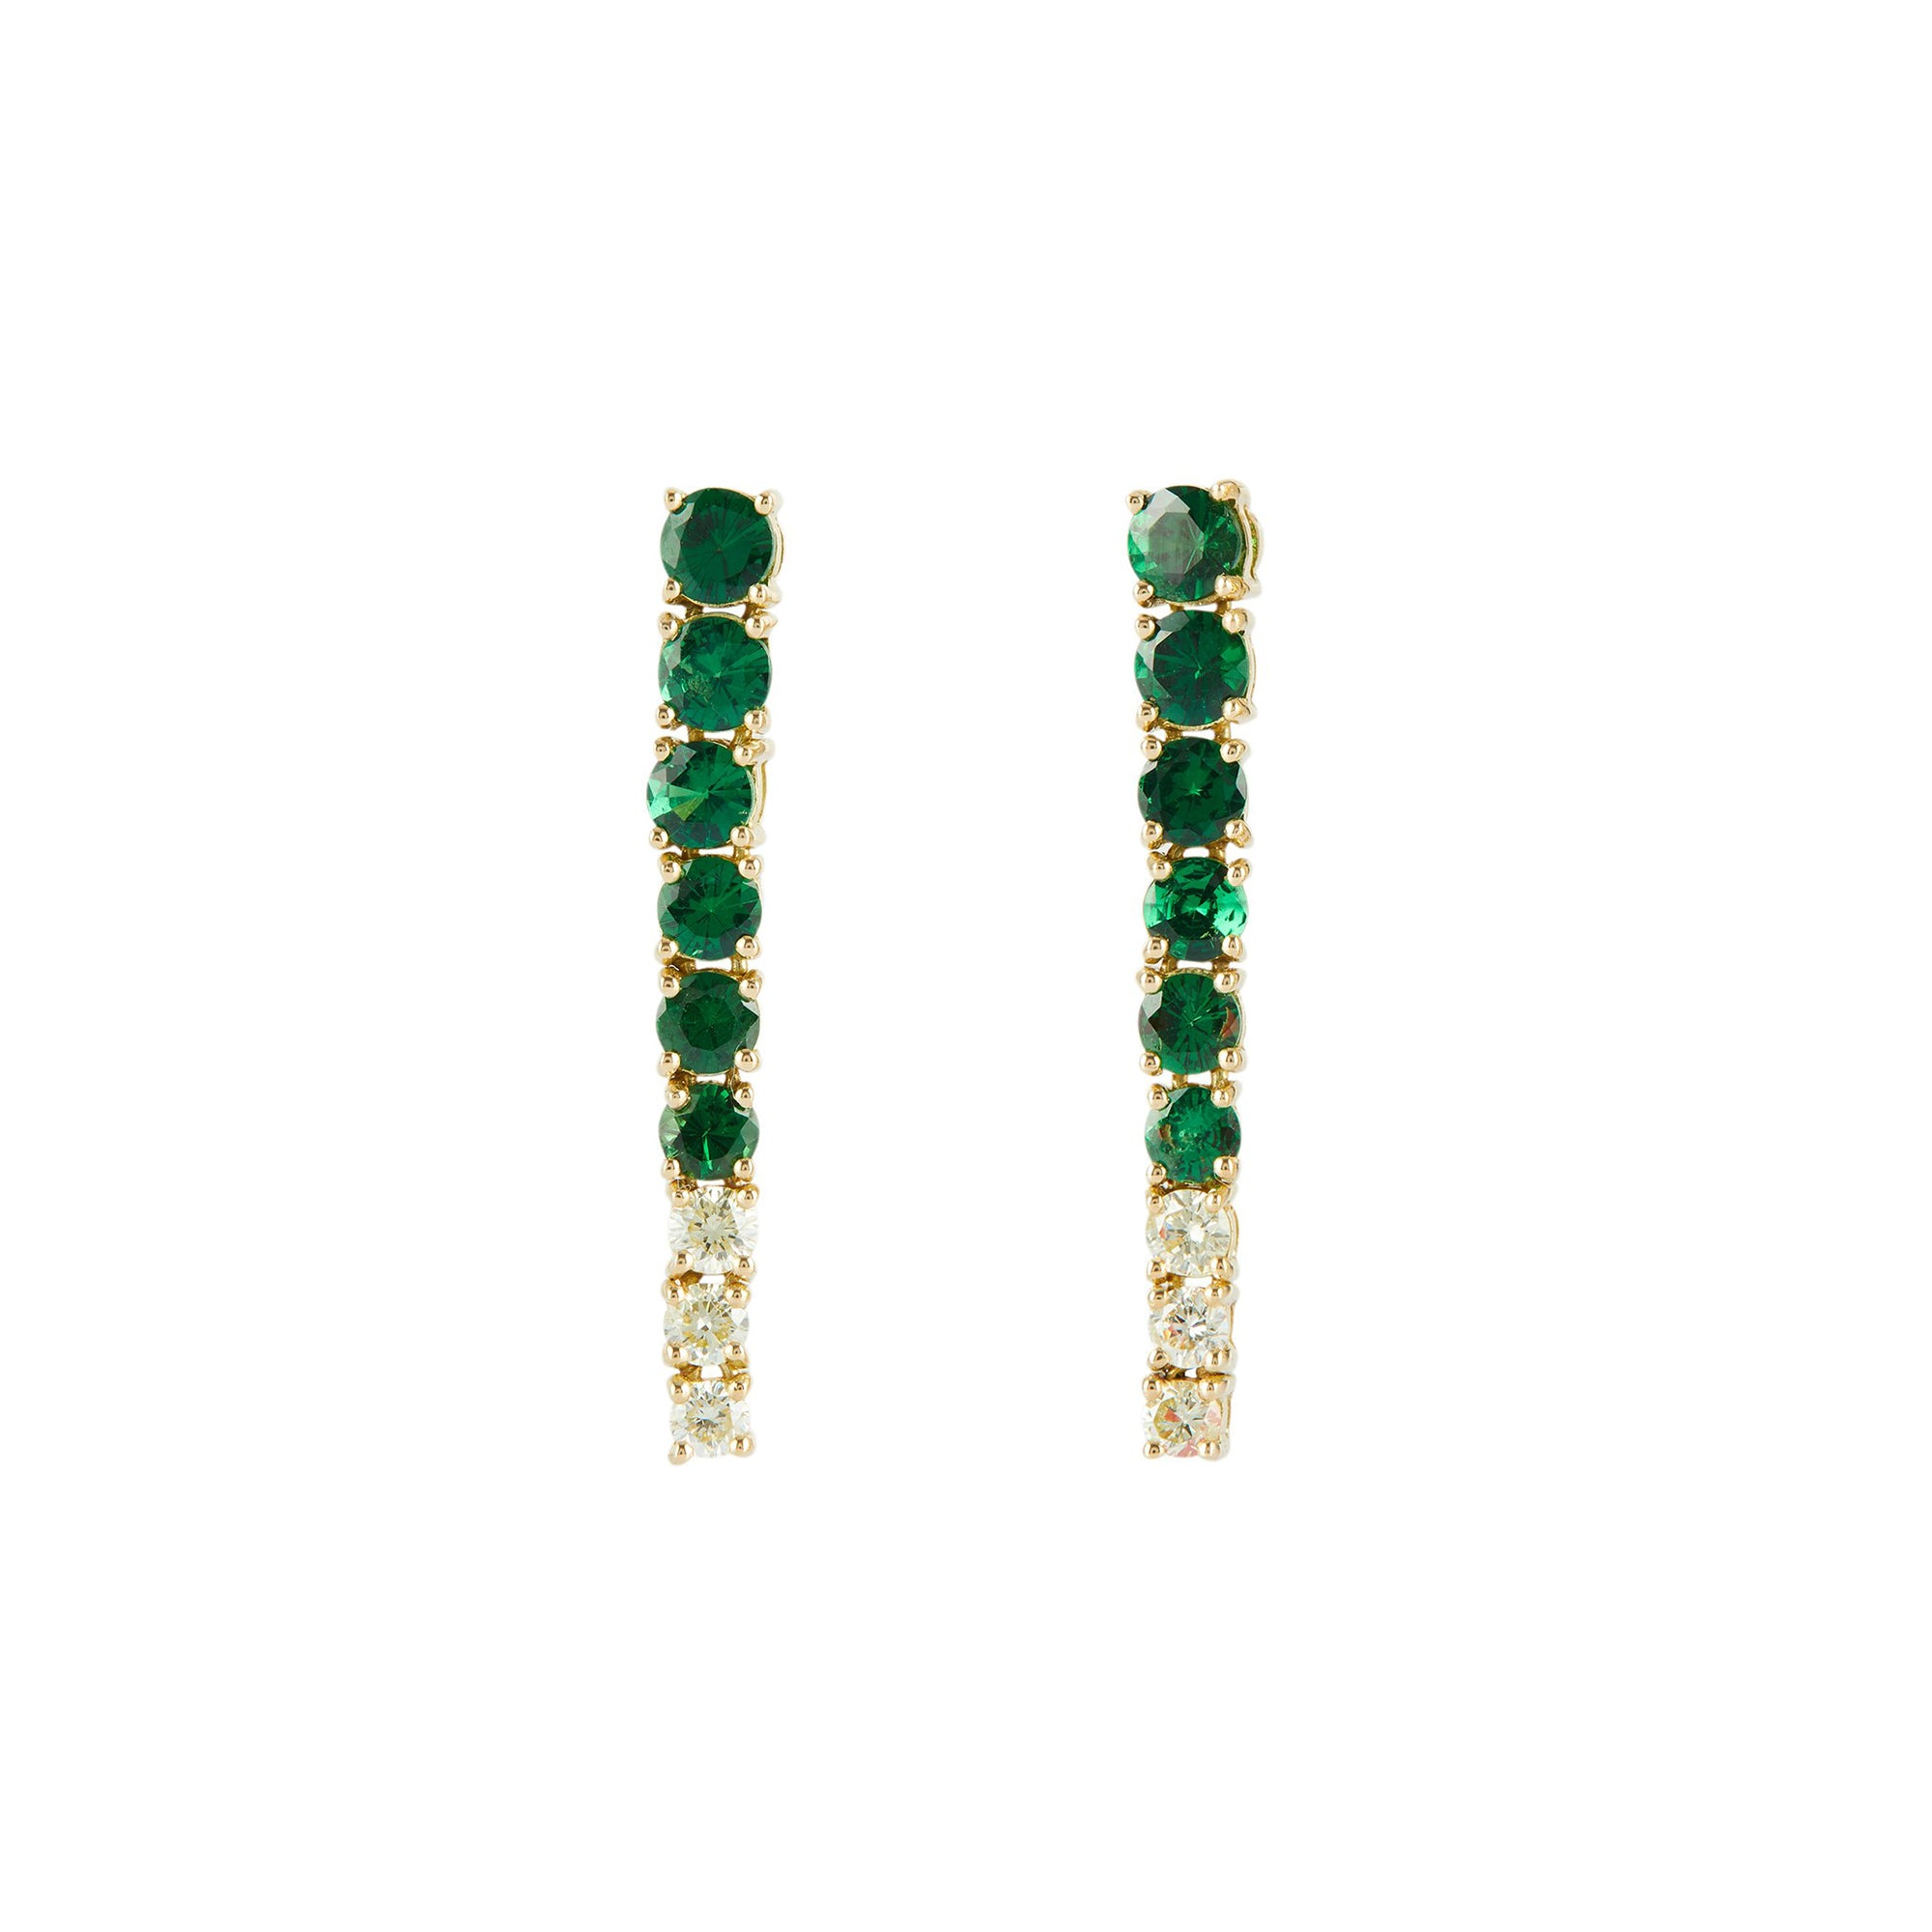 Tsavorite and Canary Diamond Dream Links Earrings by Yi Collection for Broken English Jewelry